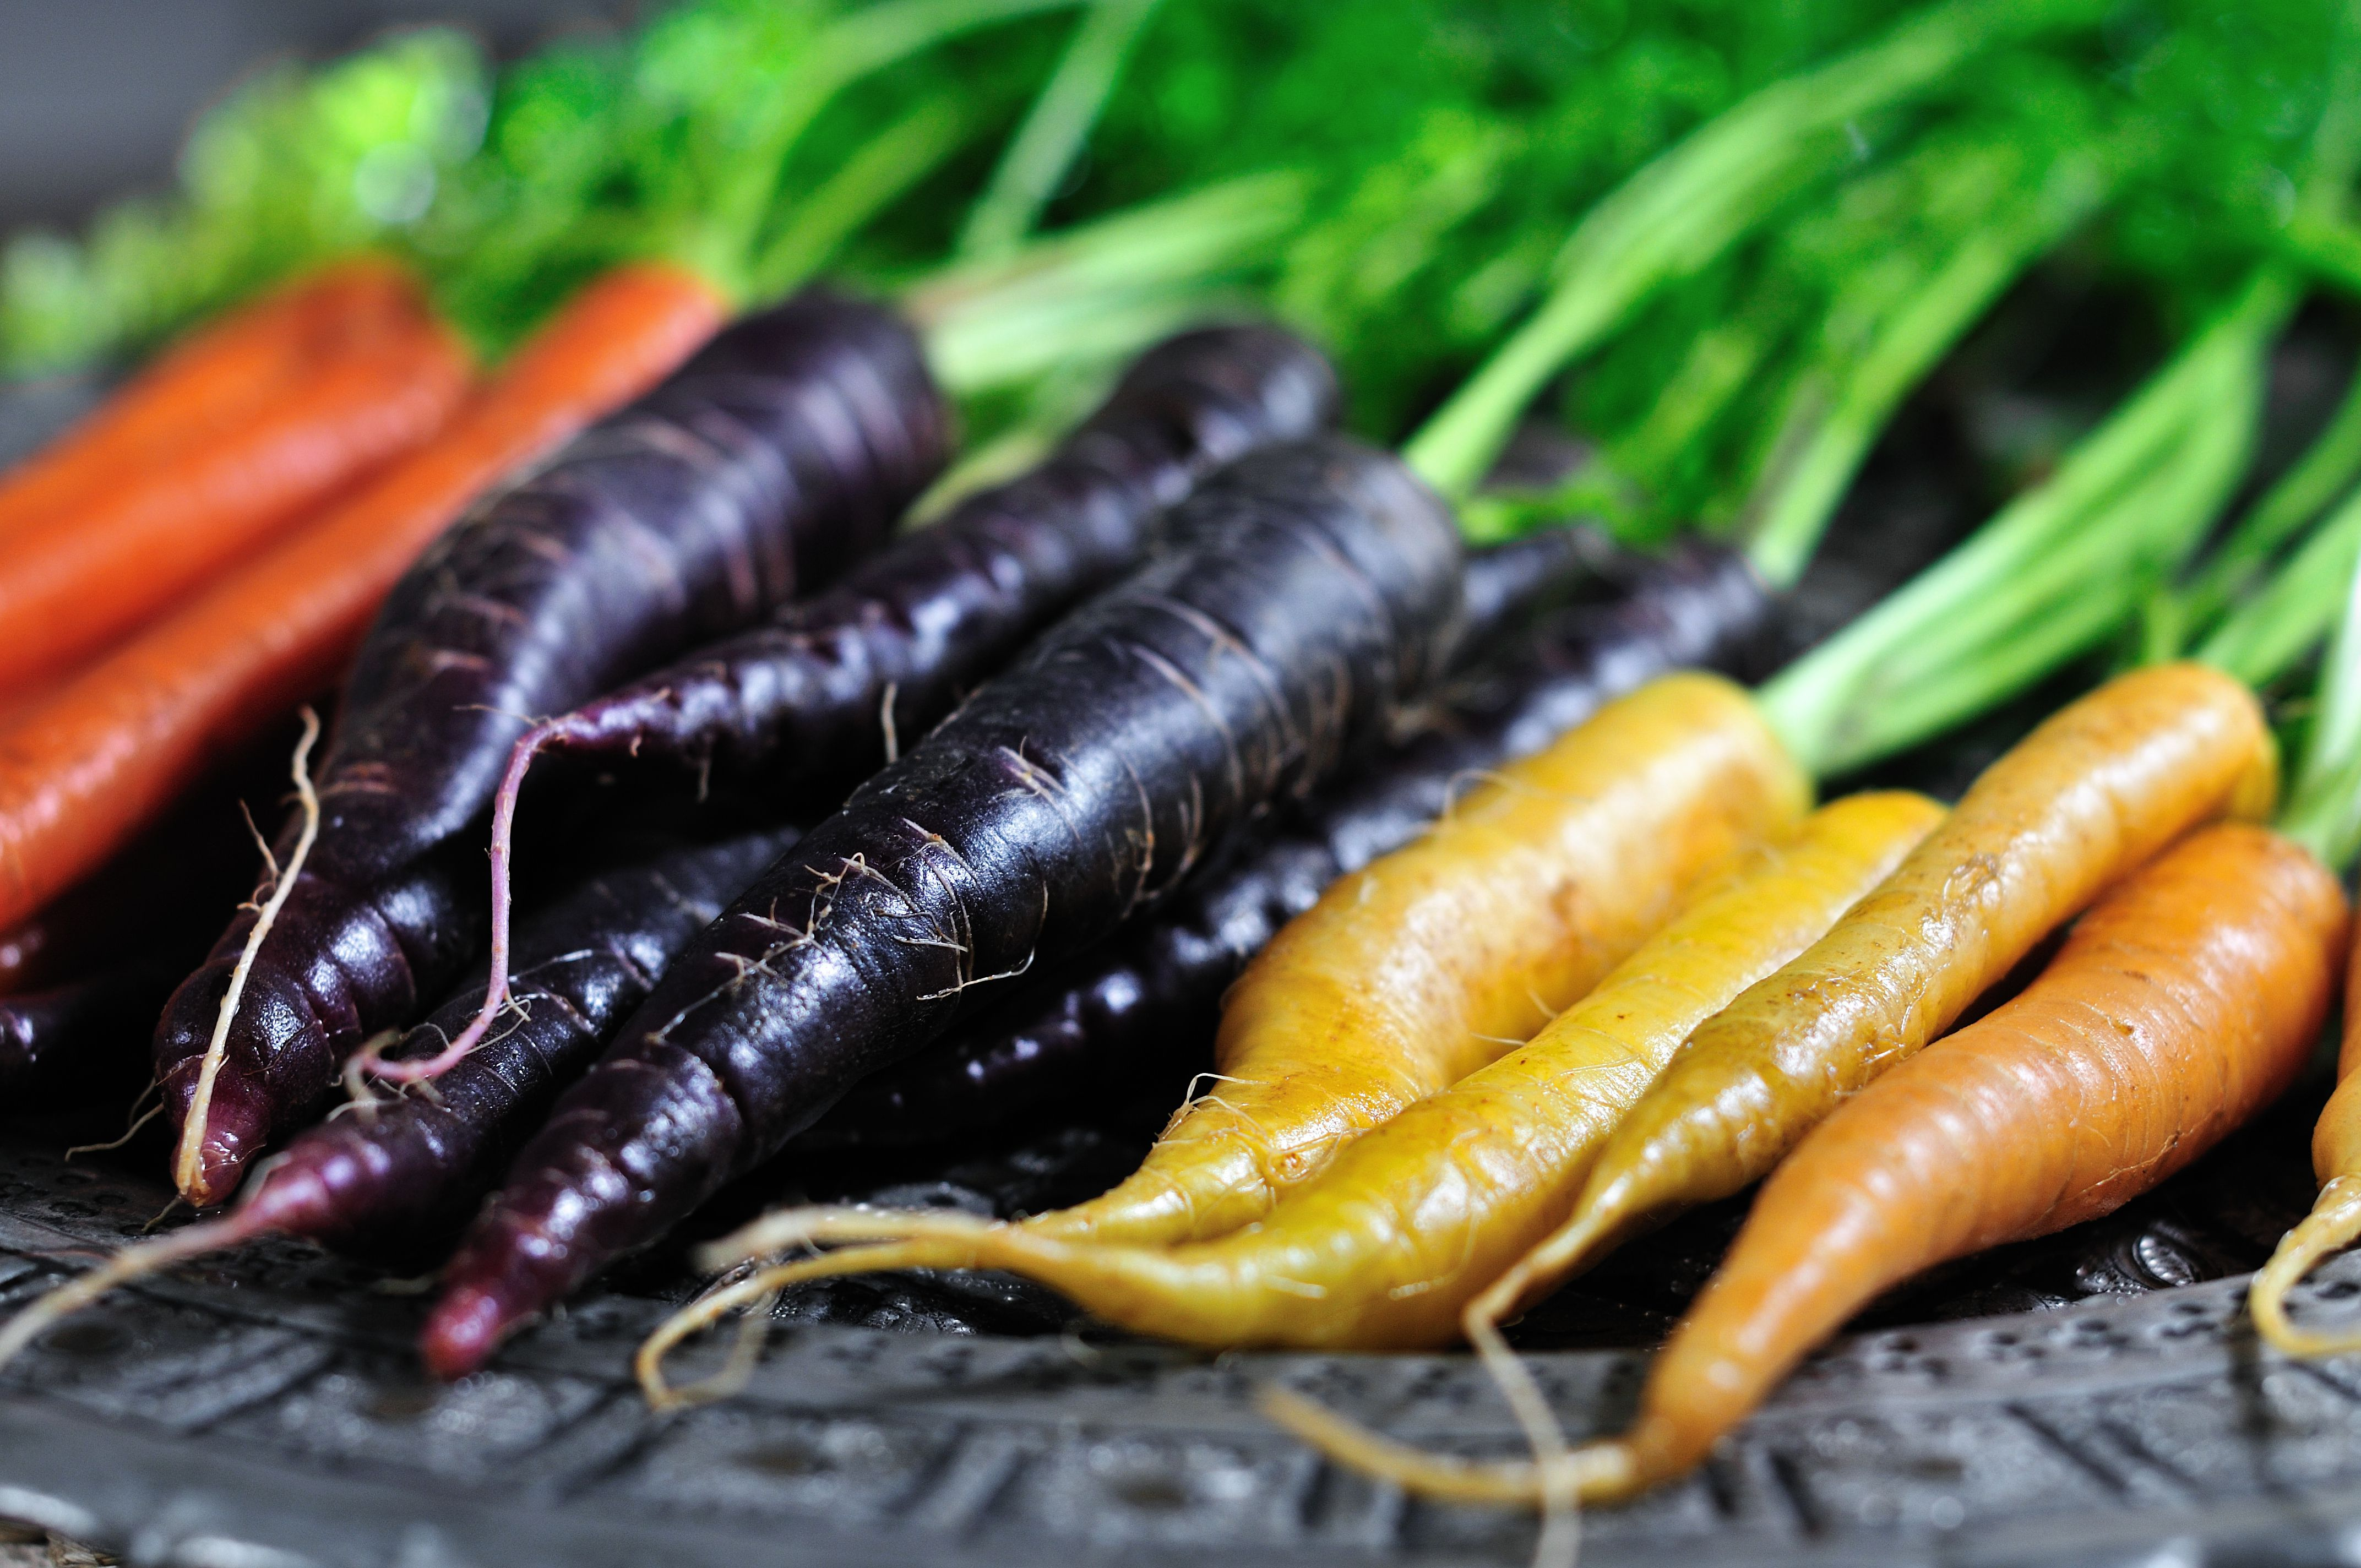 Find Out What Different Colored Carrots Taste Like